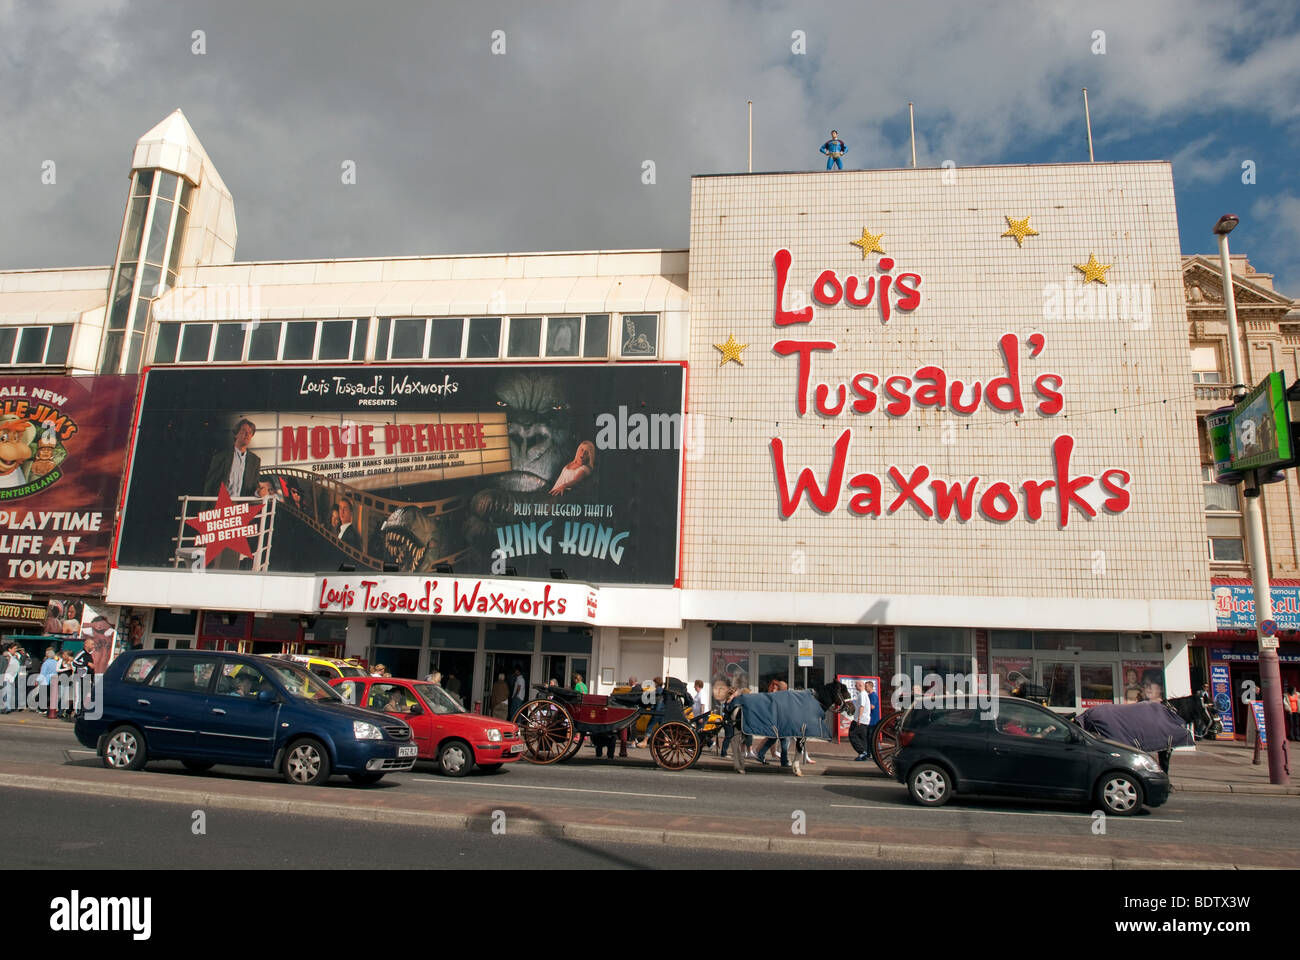 Louis Tussaud's waxworks on the Blackpool Golden Mile seafront. - Stock Image